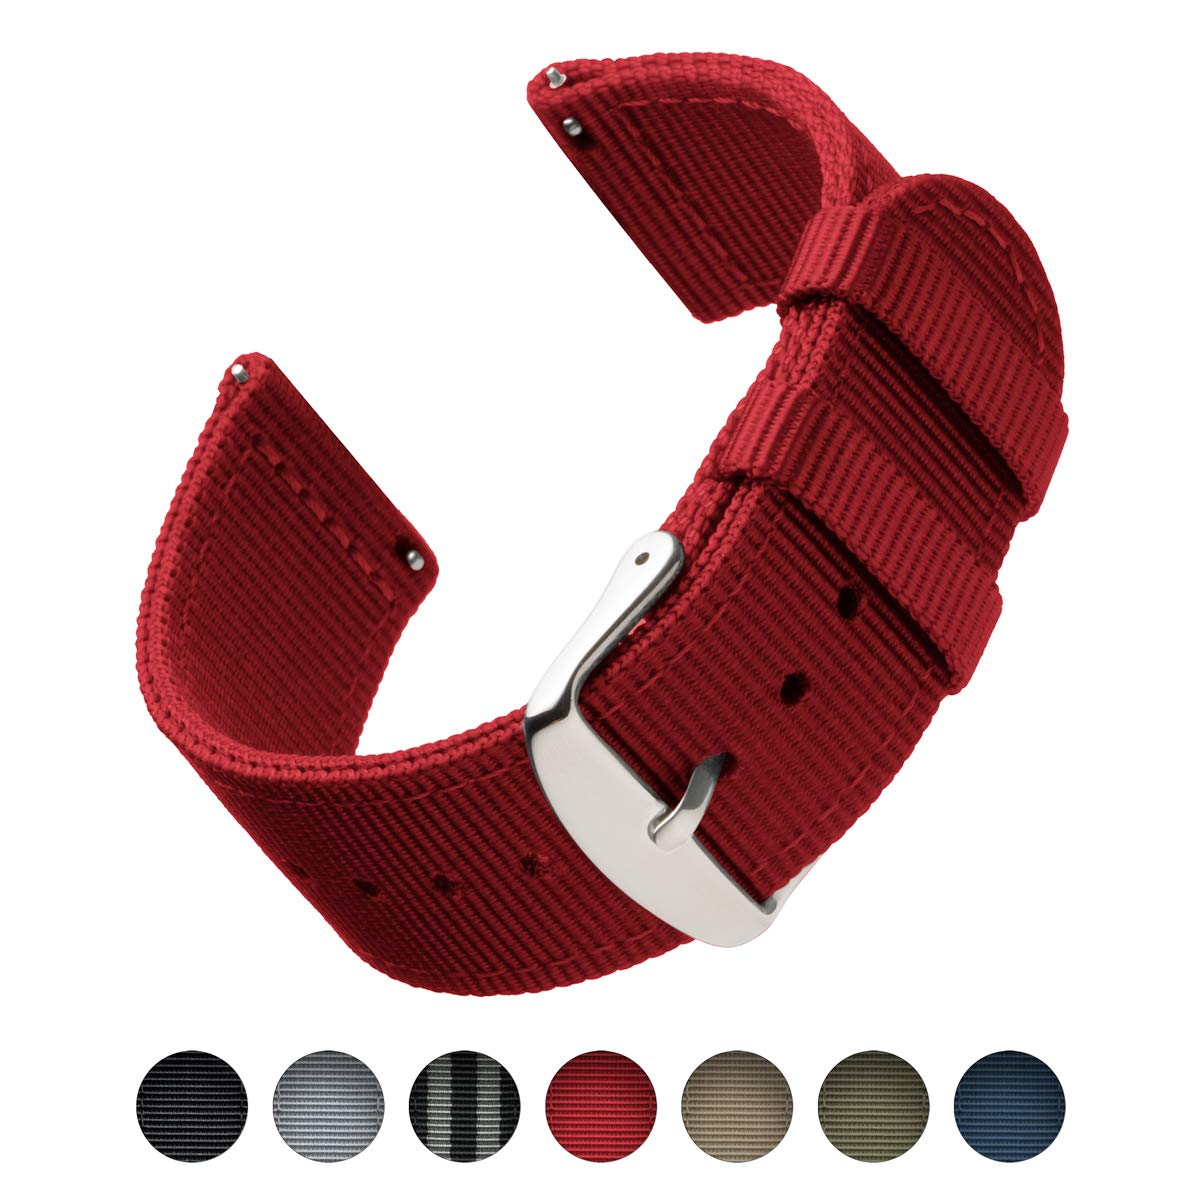 Archer Watch Straps Premium Nylon Quick Release Luna Navy Nokha Sneakers Women 38 Replacement Bands For Men And Watches Smartwatches Red 18mm